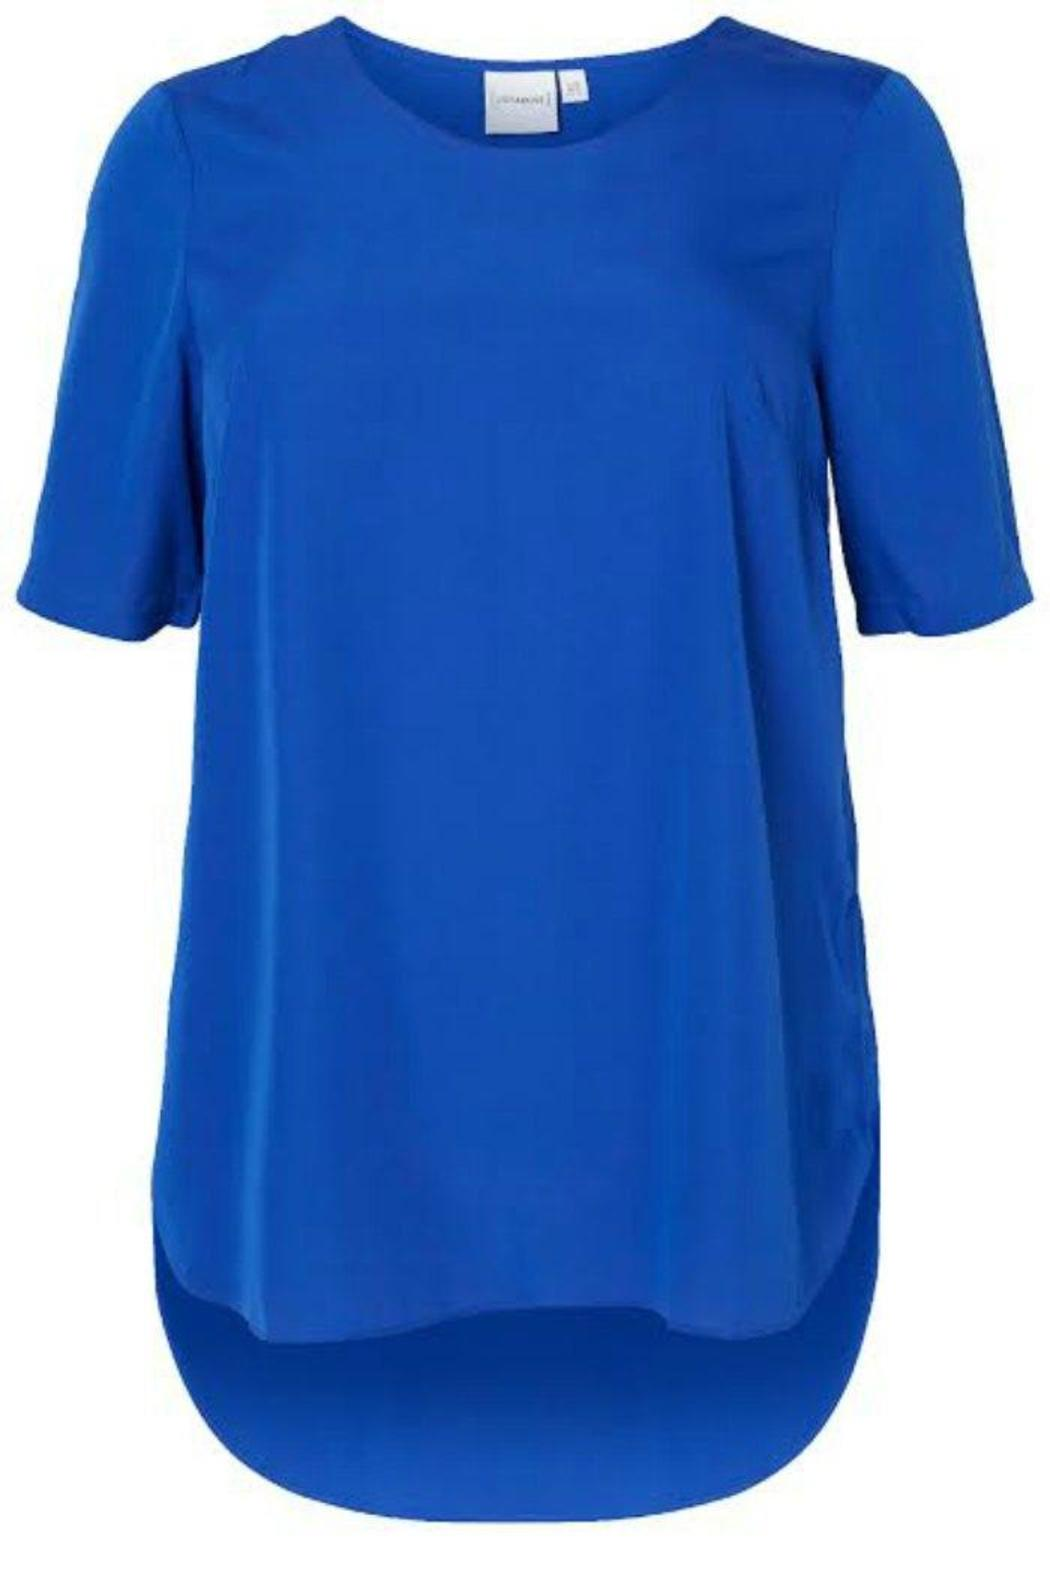 a39c2baa38 JUNAROSE Royal Blue Top from Des Moines by Wanderlust fashion ...